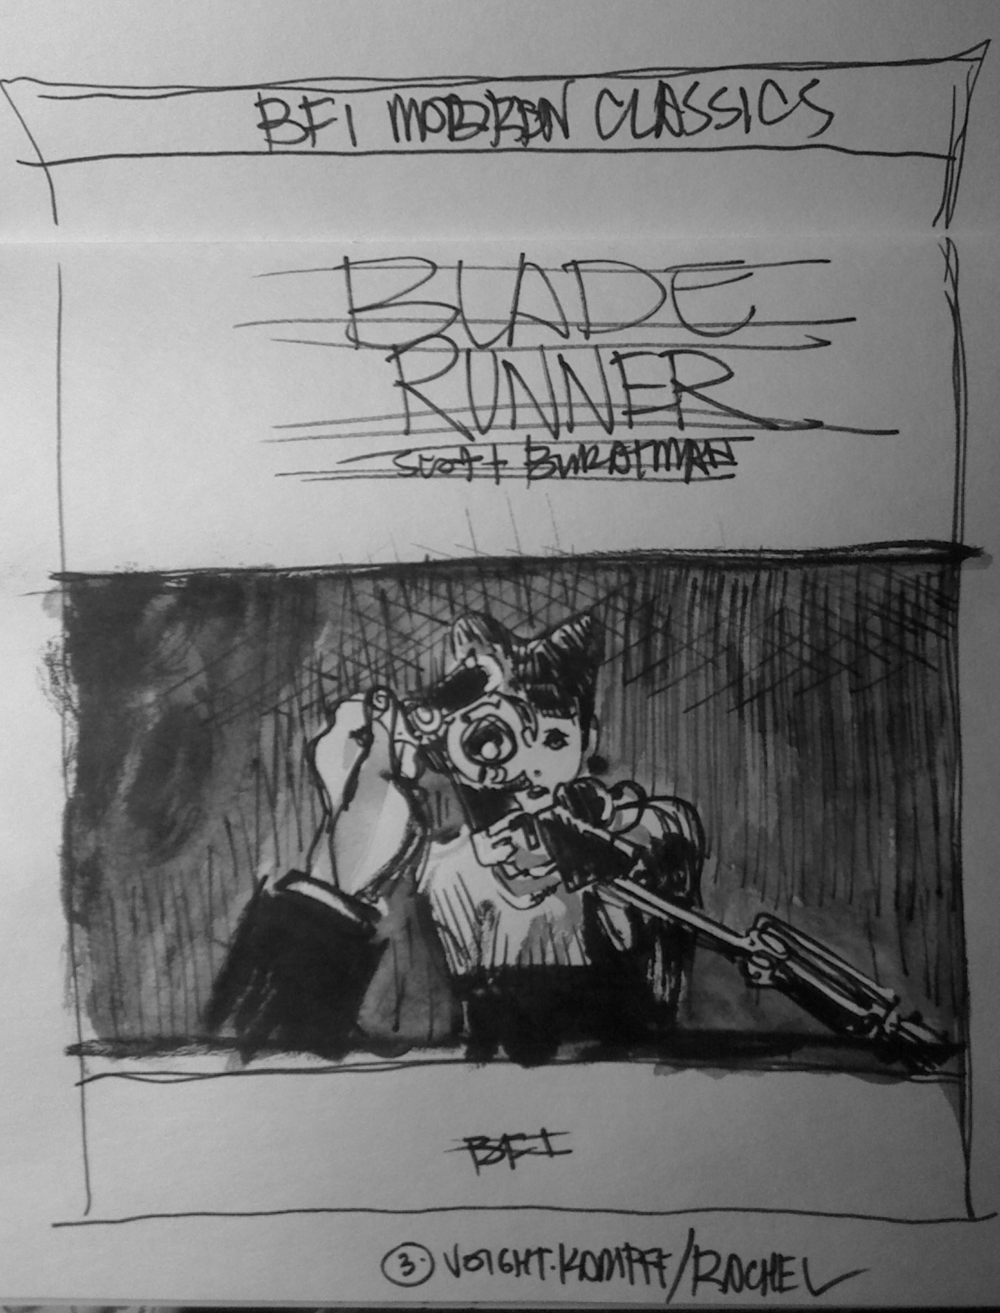 blade runner paul pope 03vktest jpg